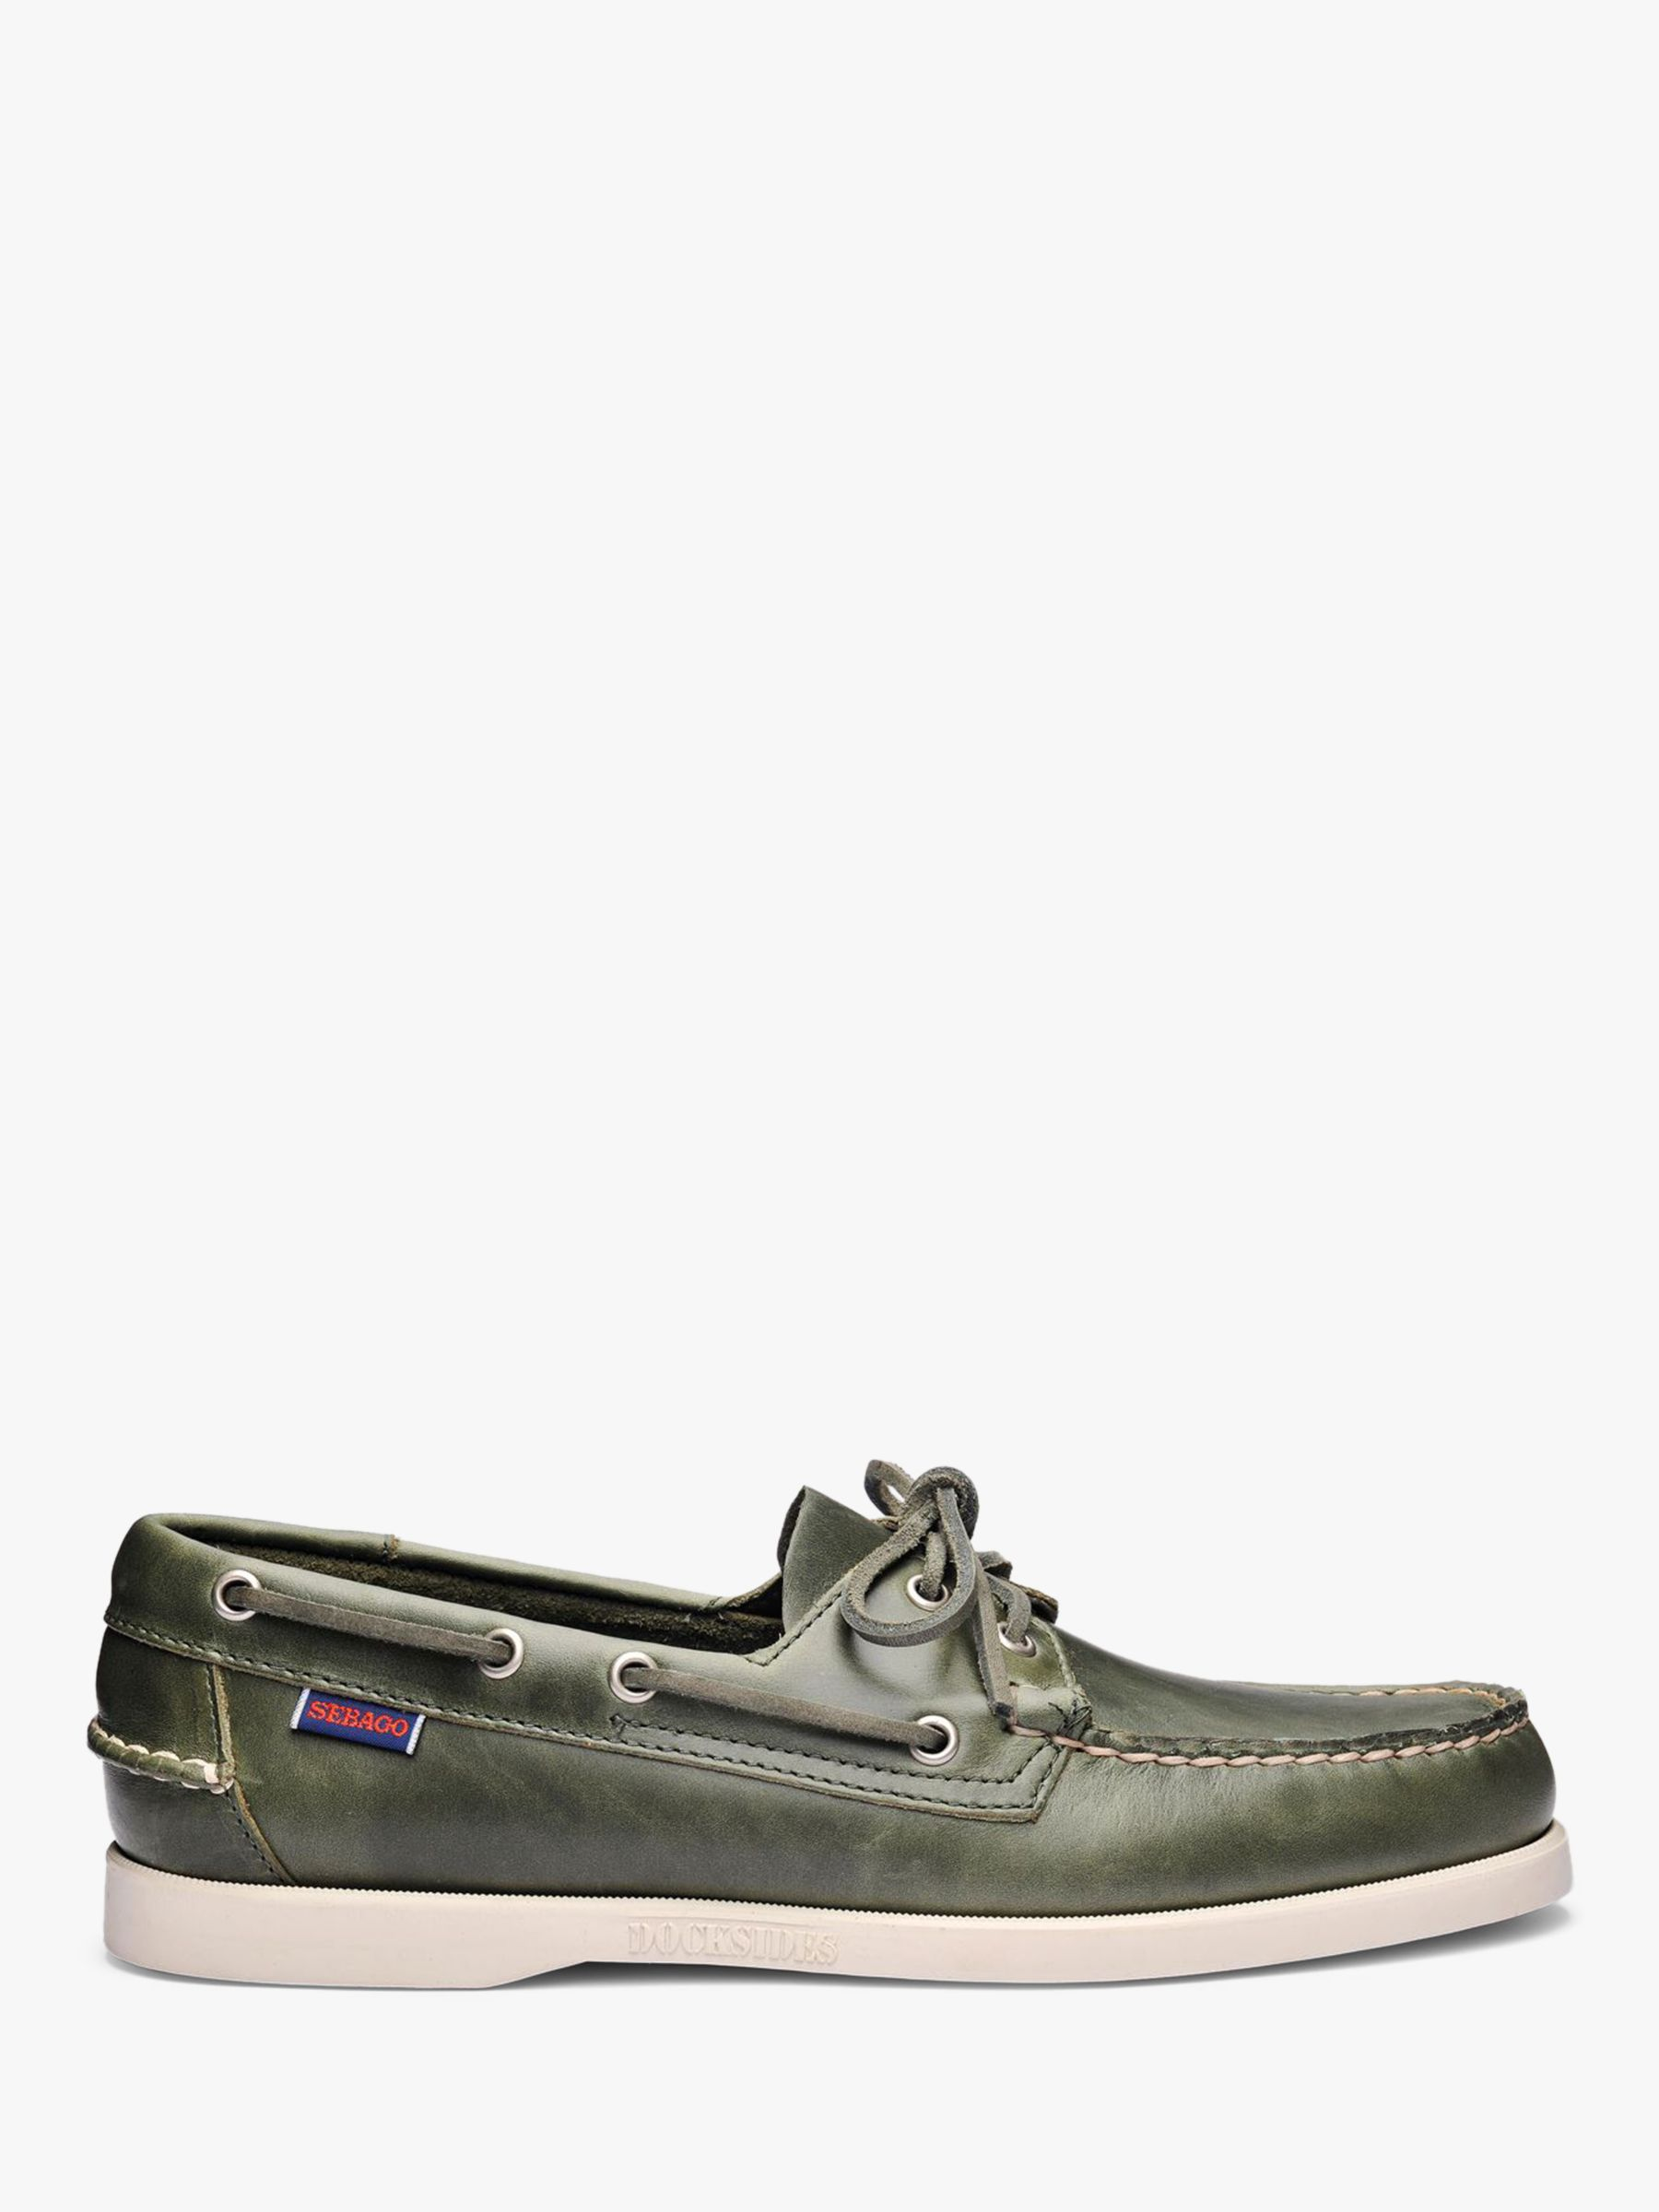 Sebago Sebago Dockside Portland Waxed Leather Boat Shoes, Green Military